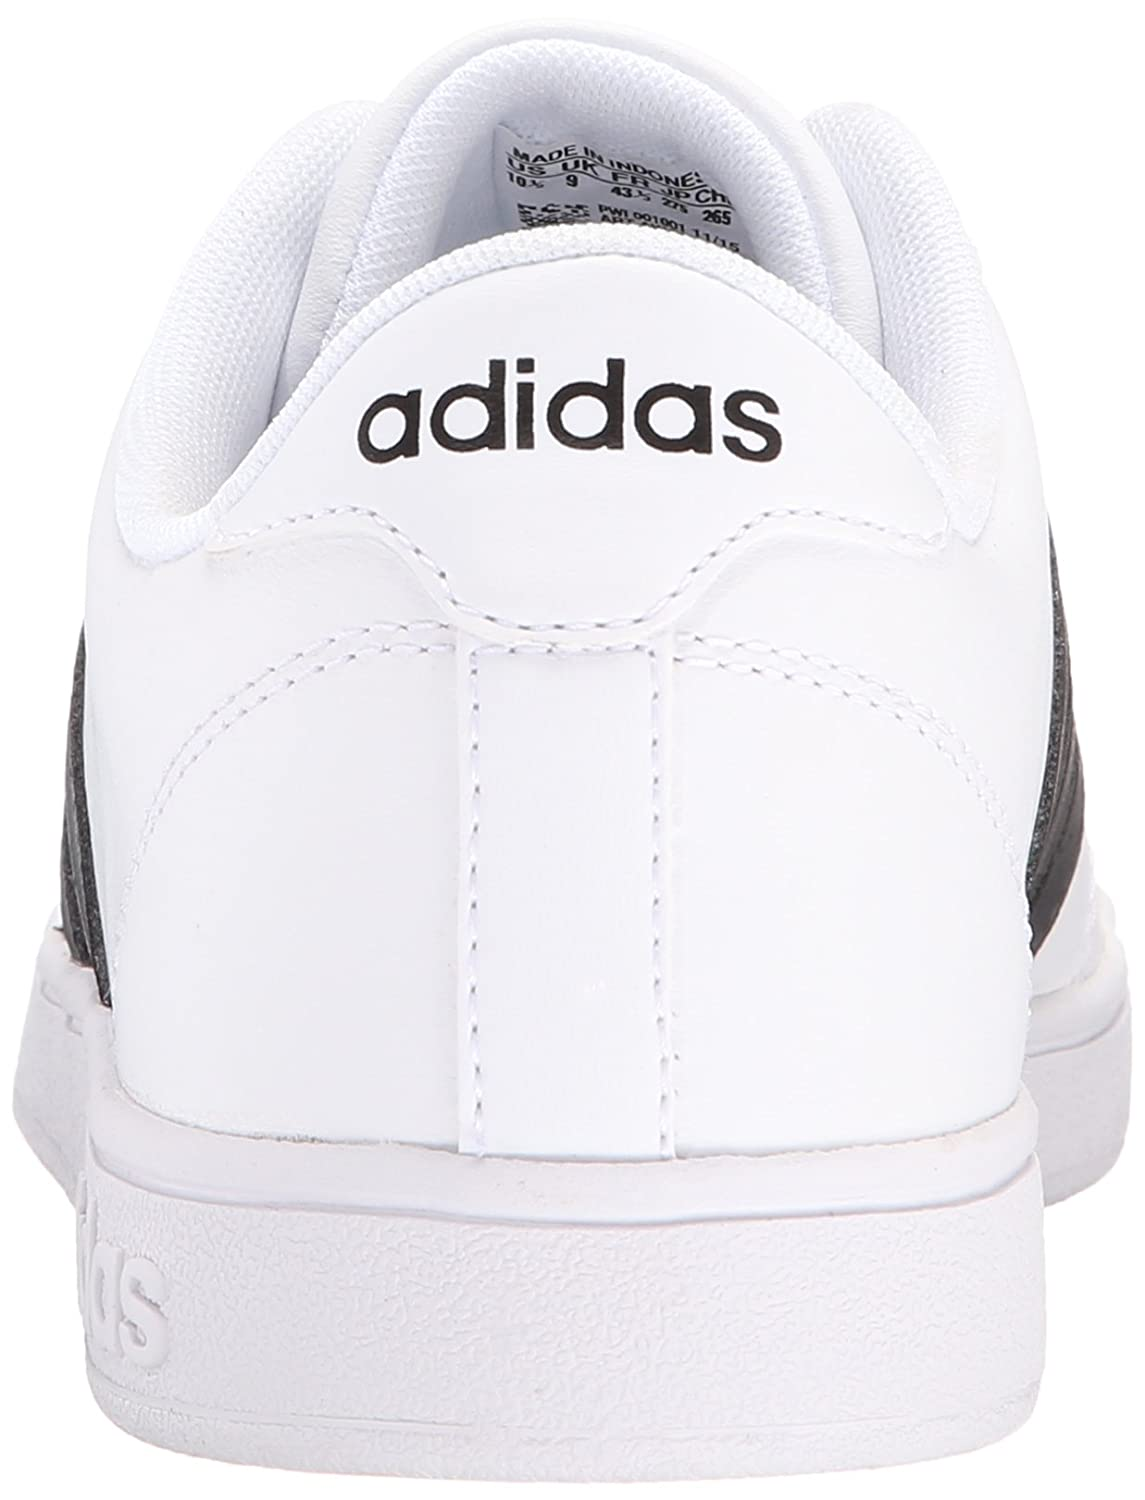 new styles d51d6 cac98 Amazon.com  Adidas Neo Womens Baseline W Casual Sneaker, WhiteBlack